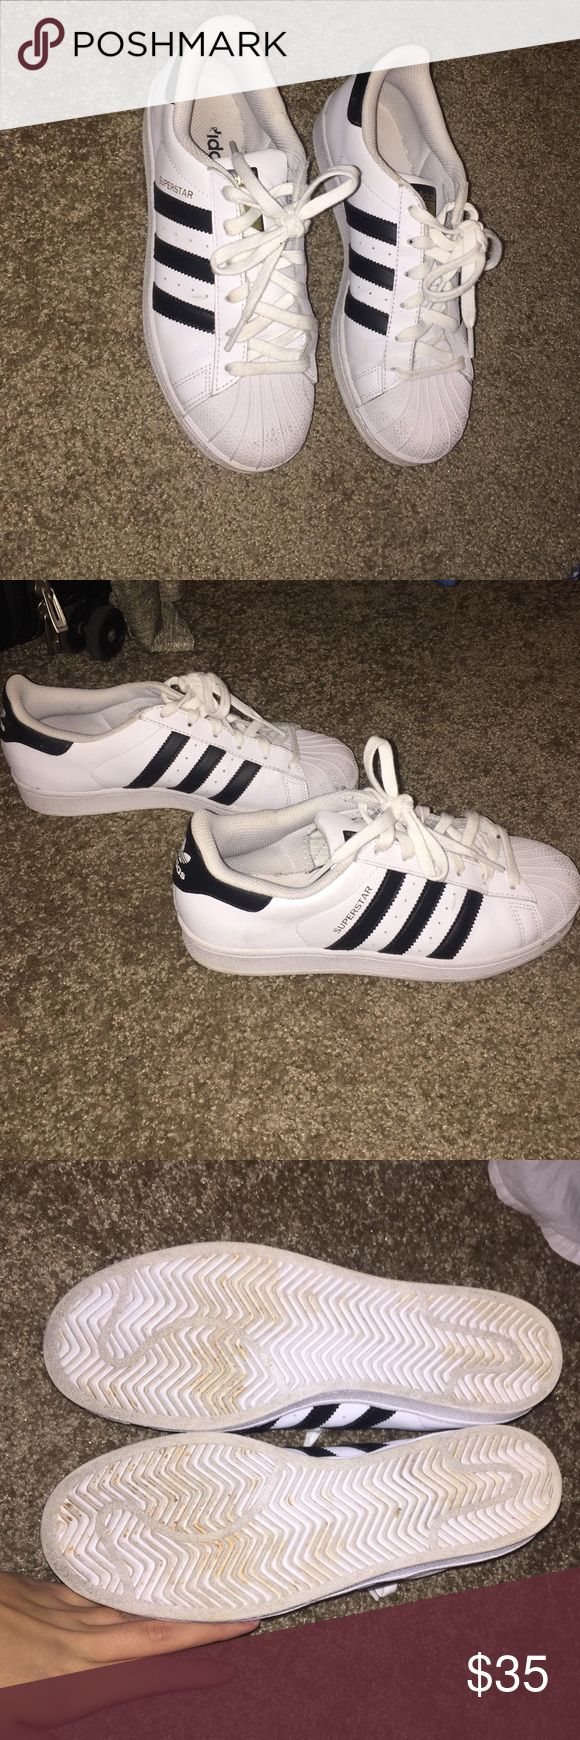 Adidas super stars Women's size 7 1/2. Good condition hardly ever worn Adidas Shoes Sneakers